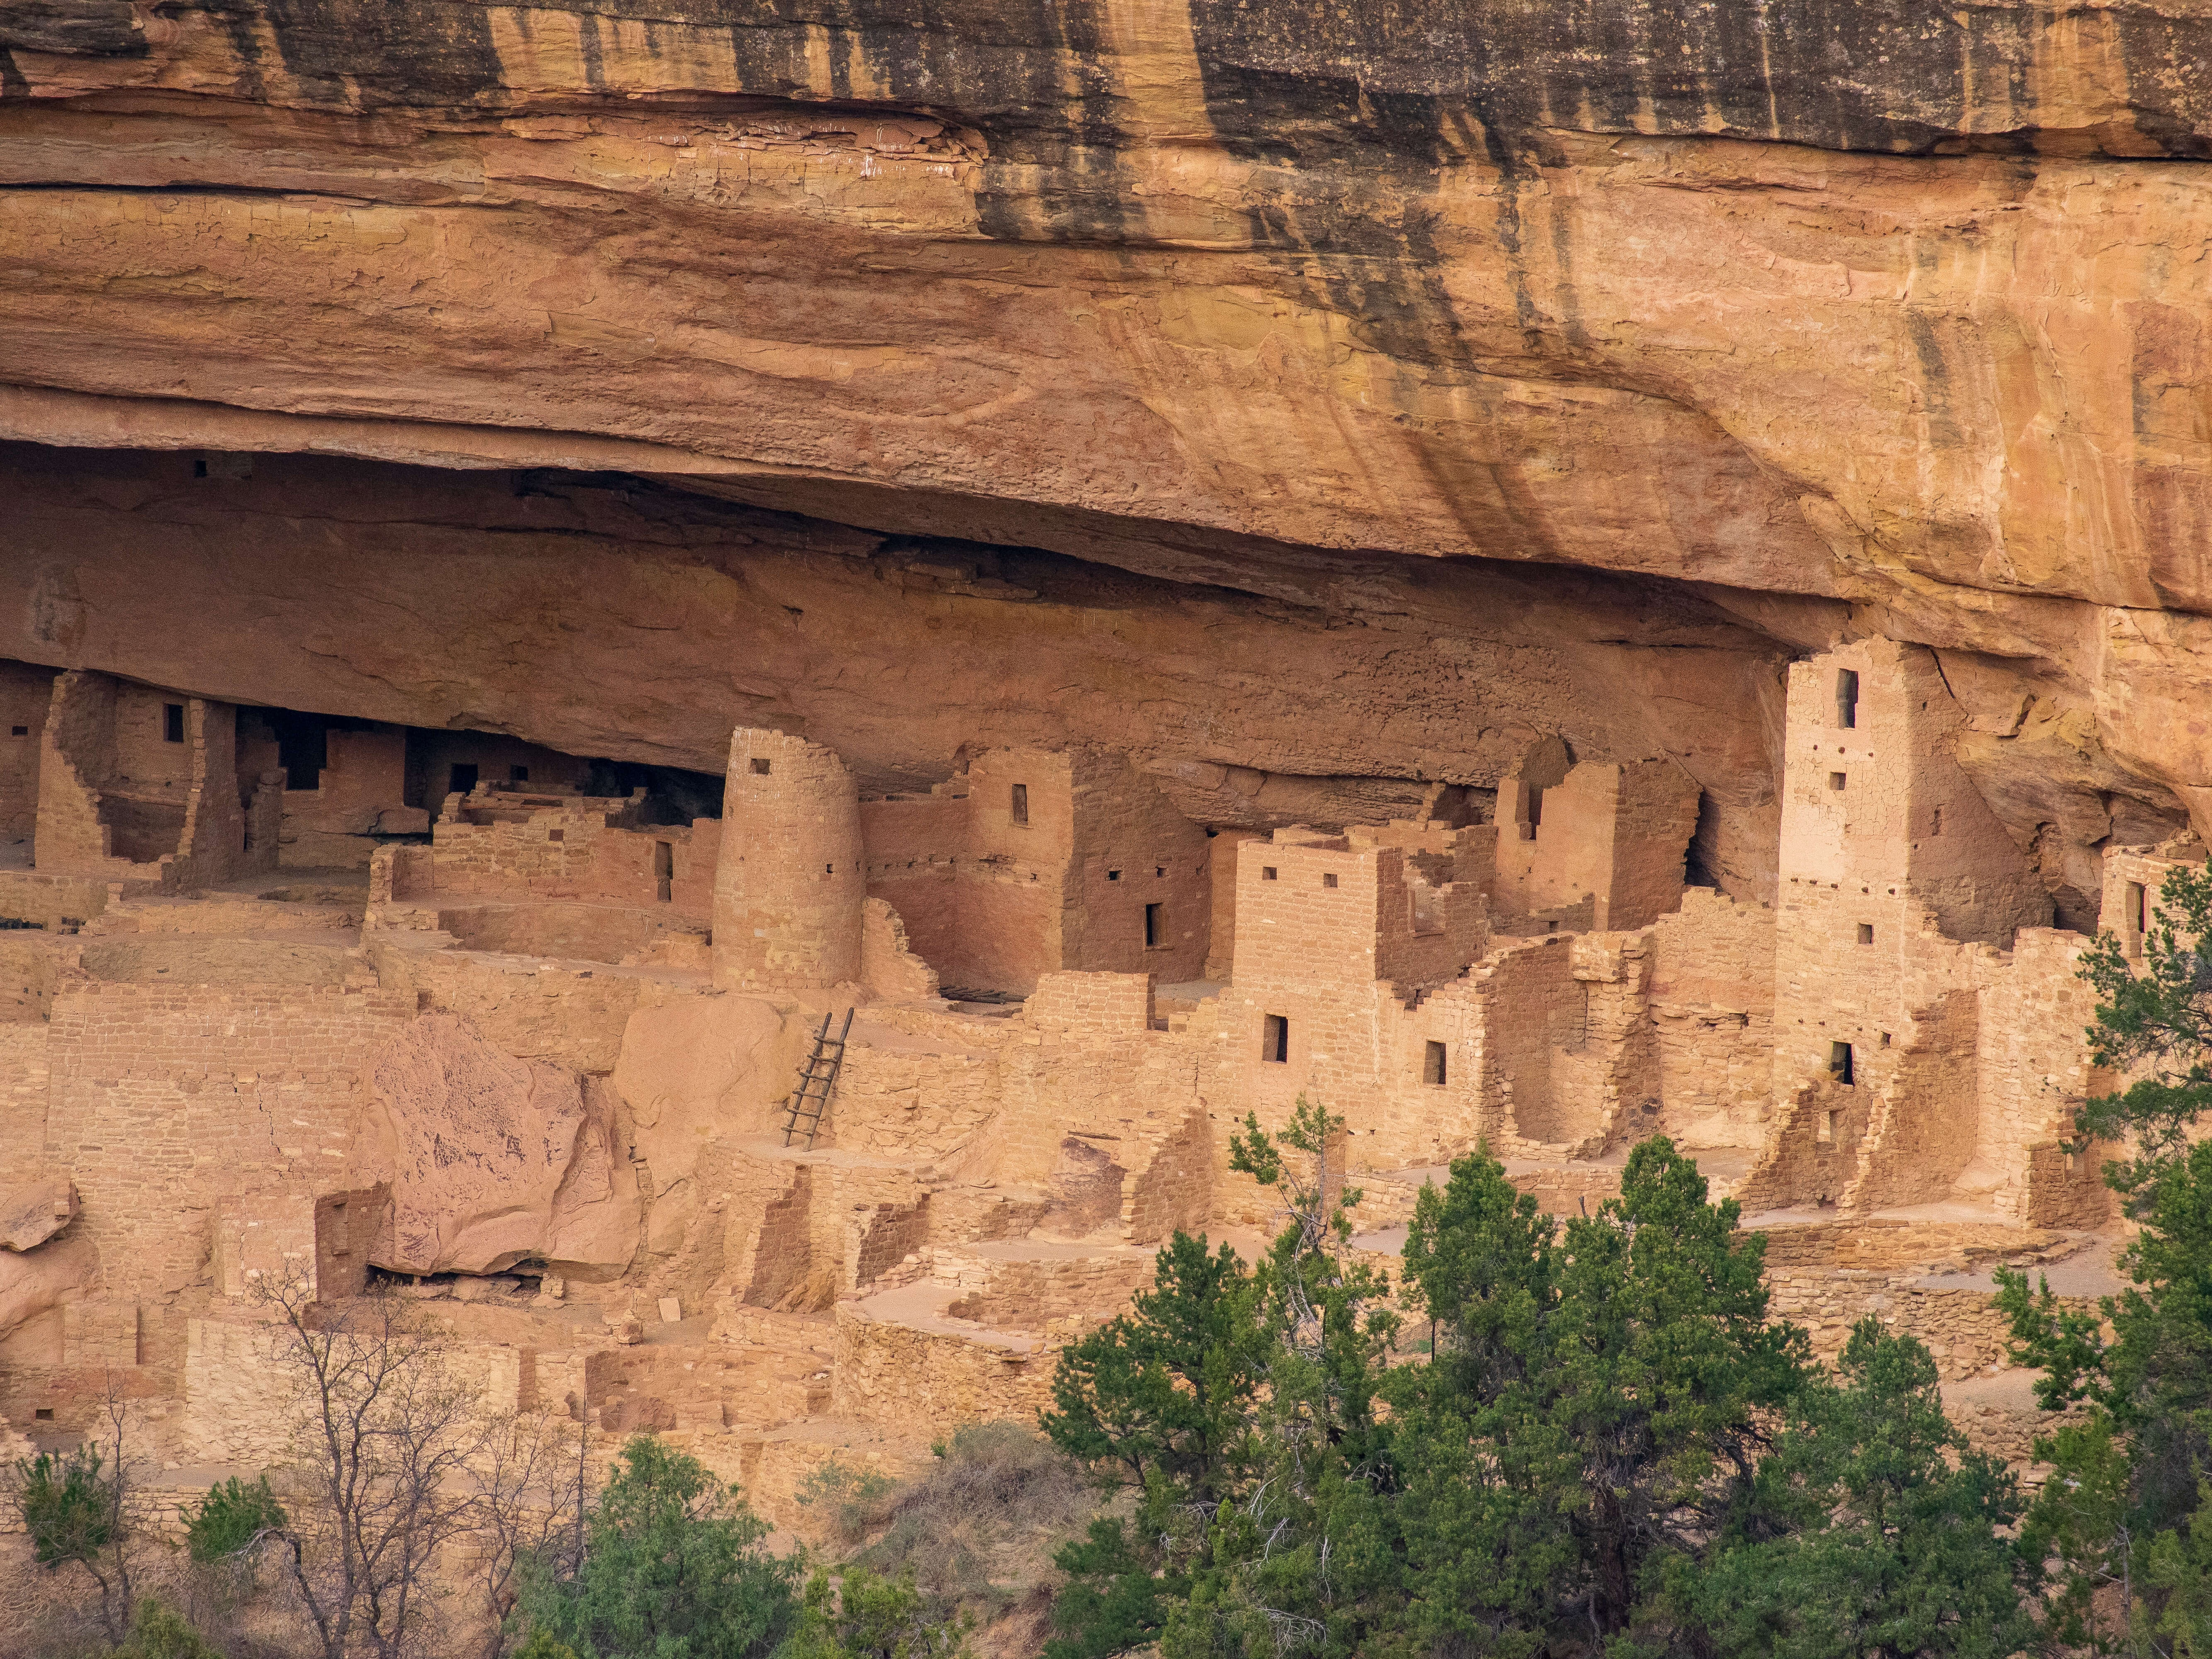 Spruce tree house Mesa Verde National Park, CO